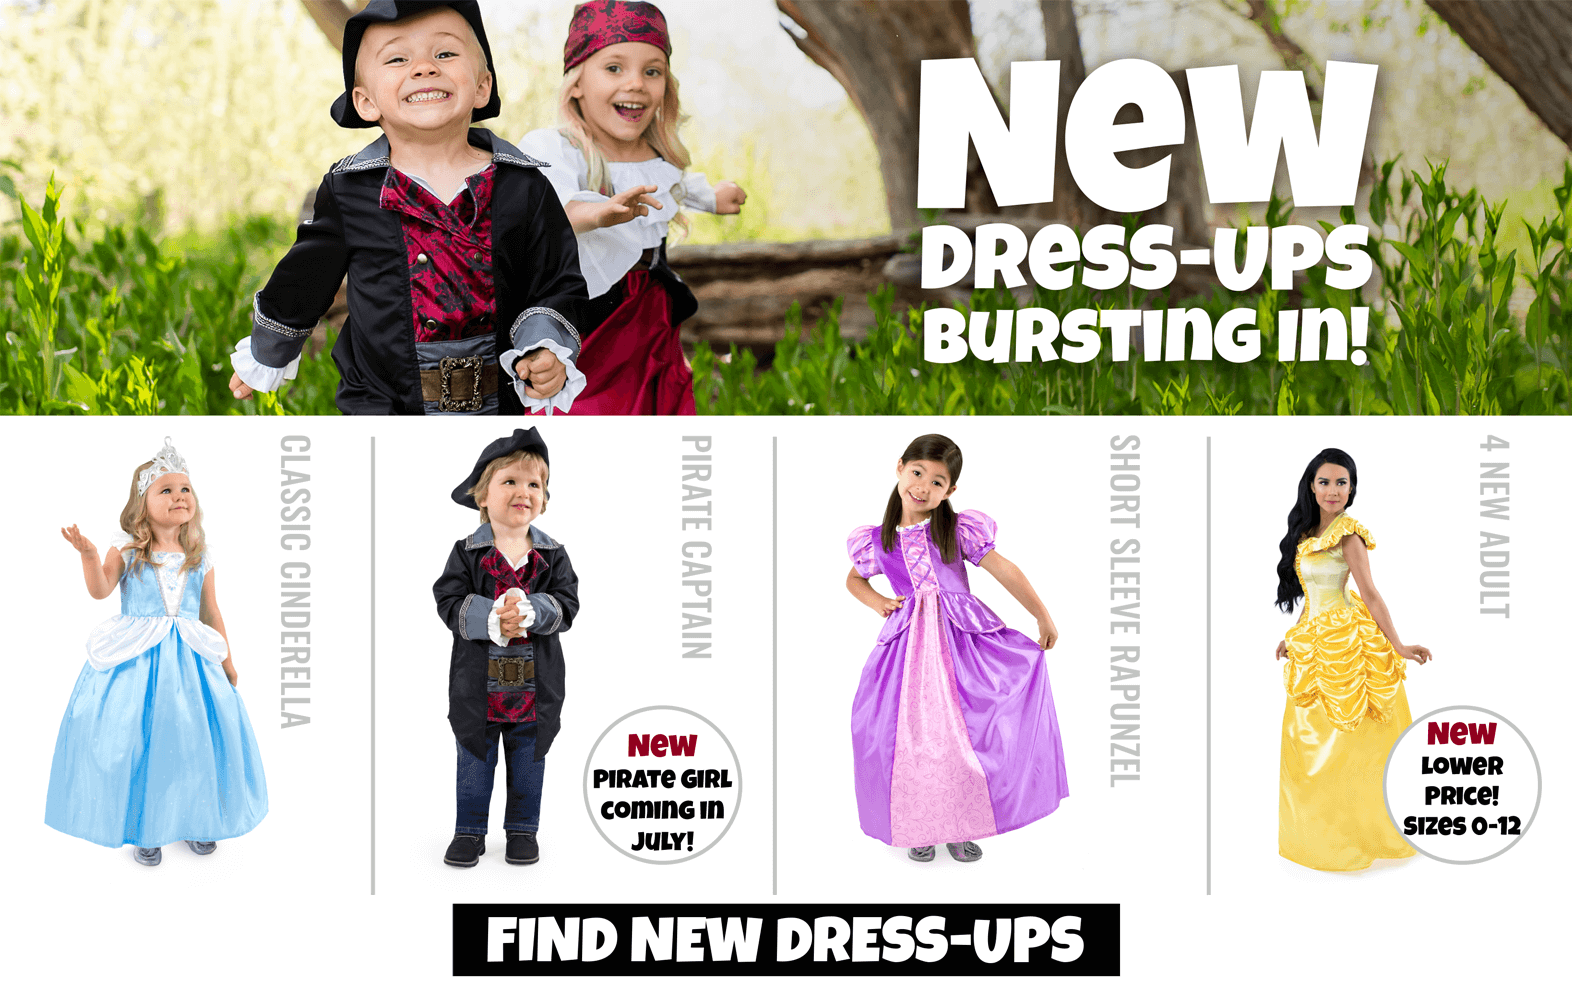 b4f3d0ac43272 Dress Ups and Costumes Current Sales